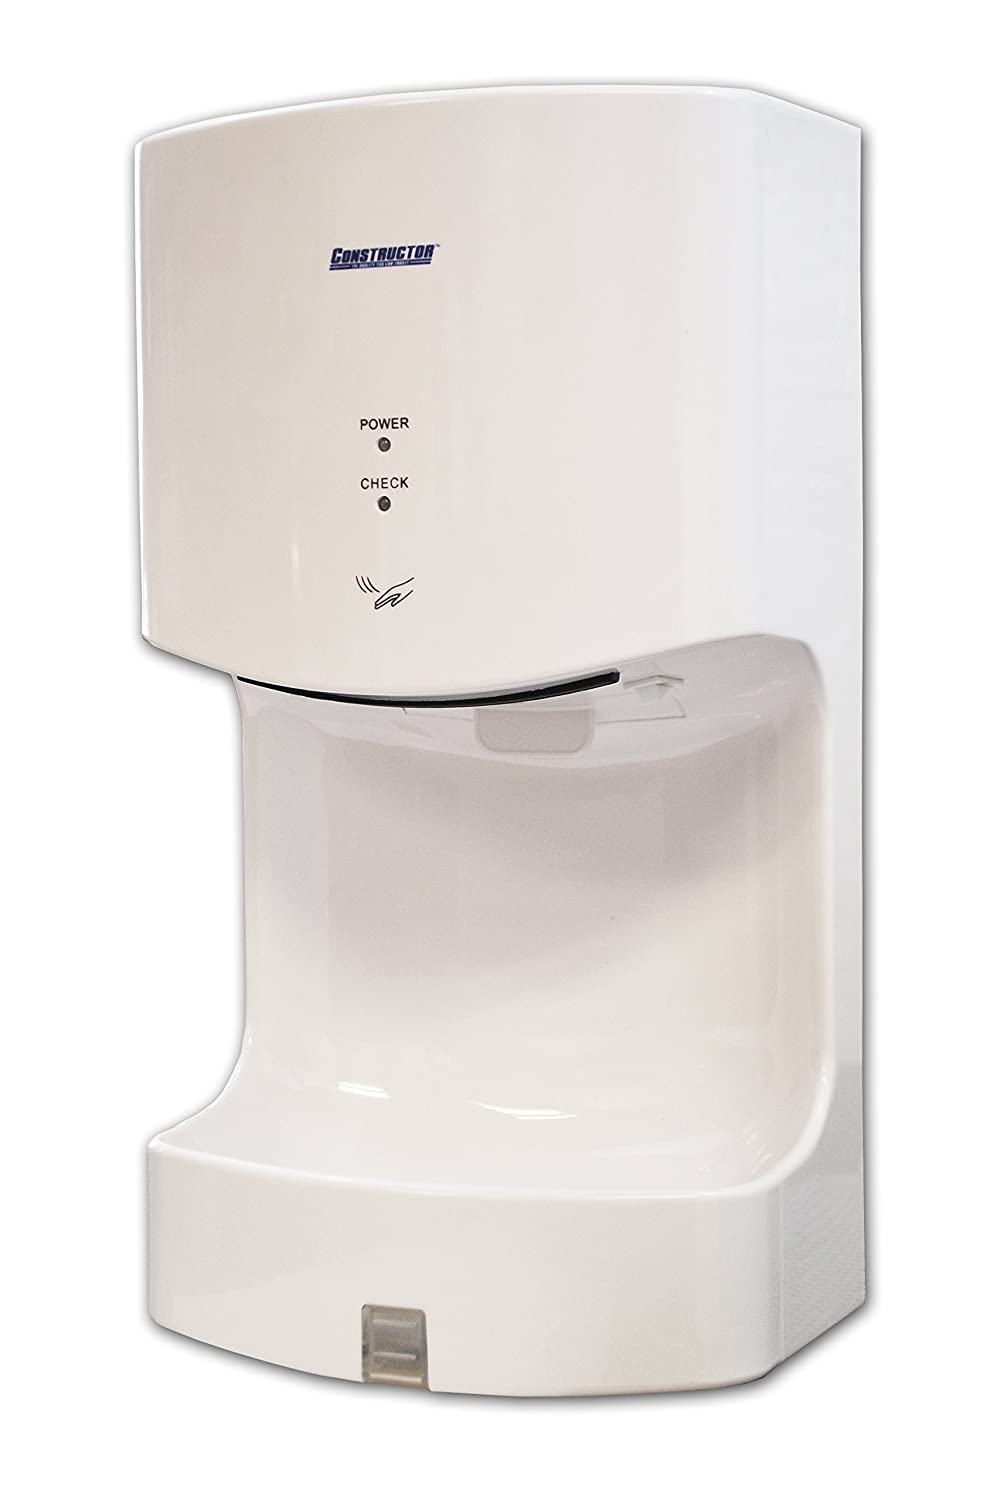 1300 Watts High Speed Automatic Hand Dryer Plastic Durable Infared (White) Constructor CHD90